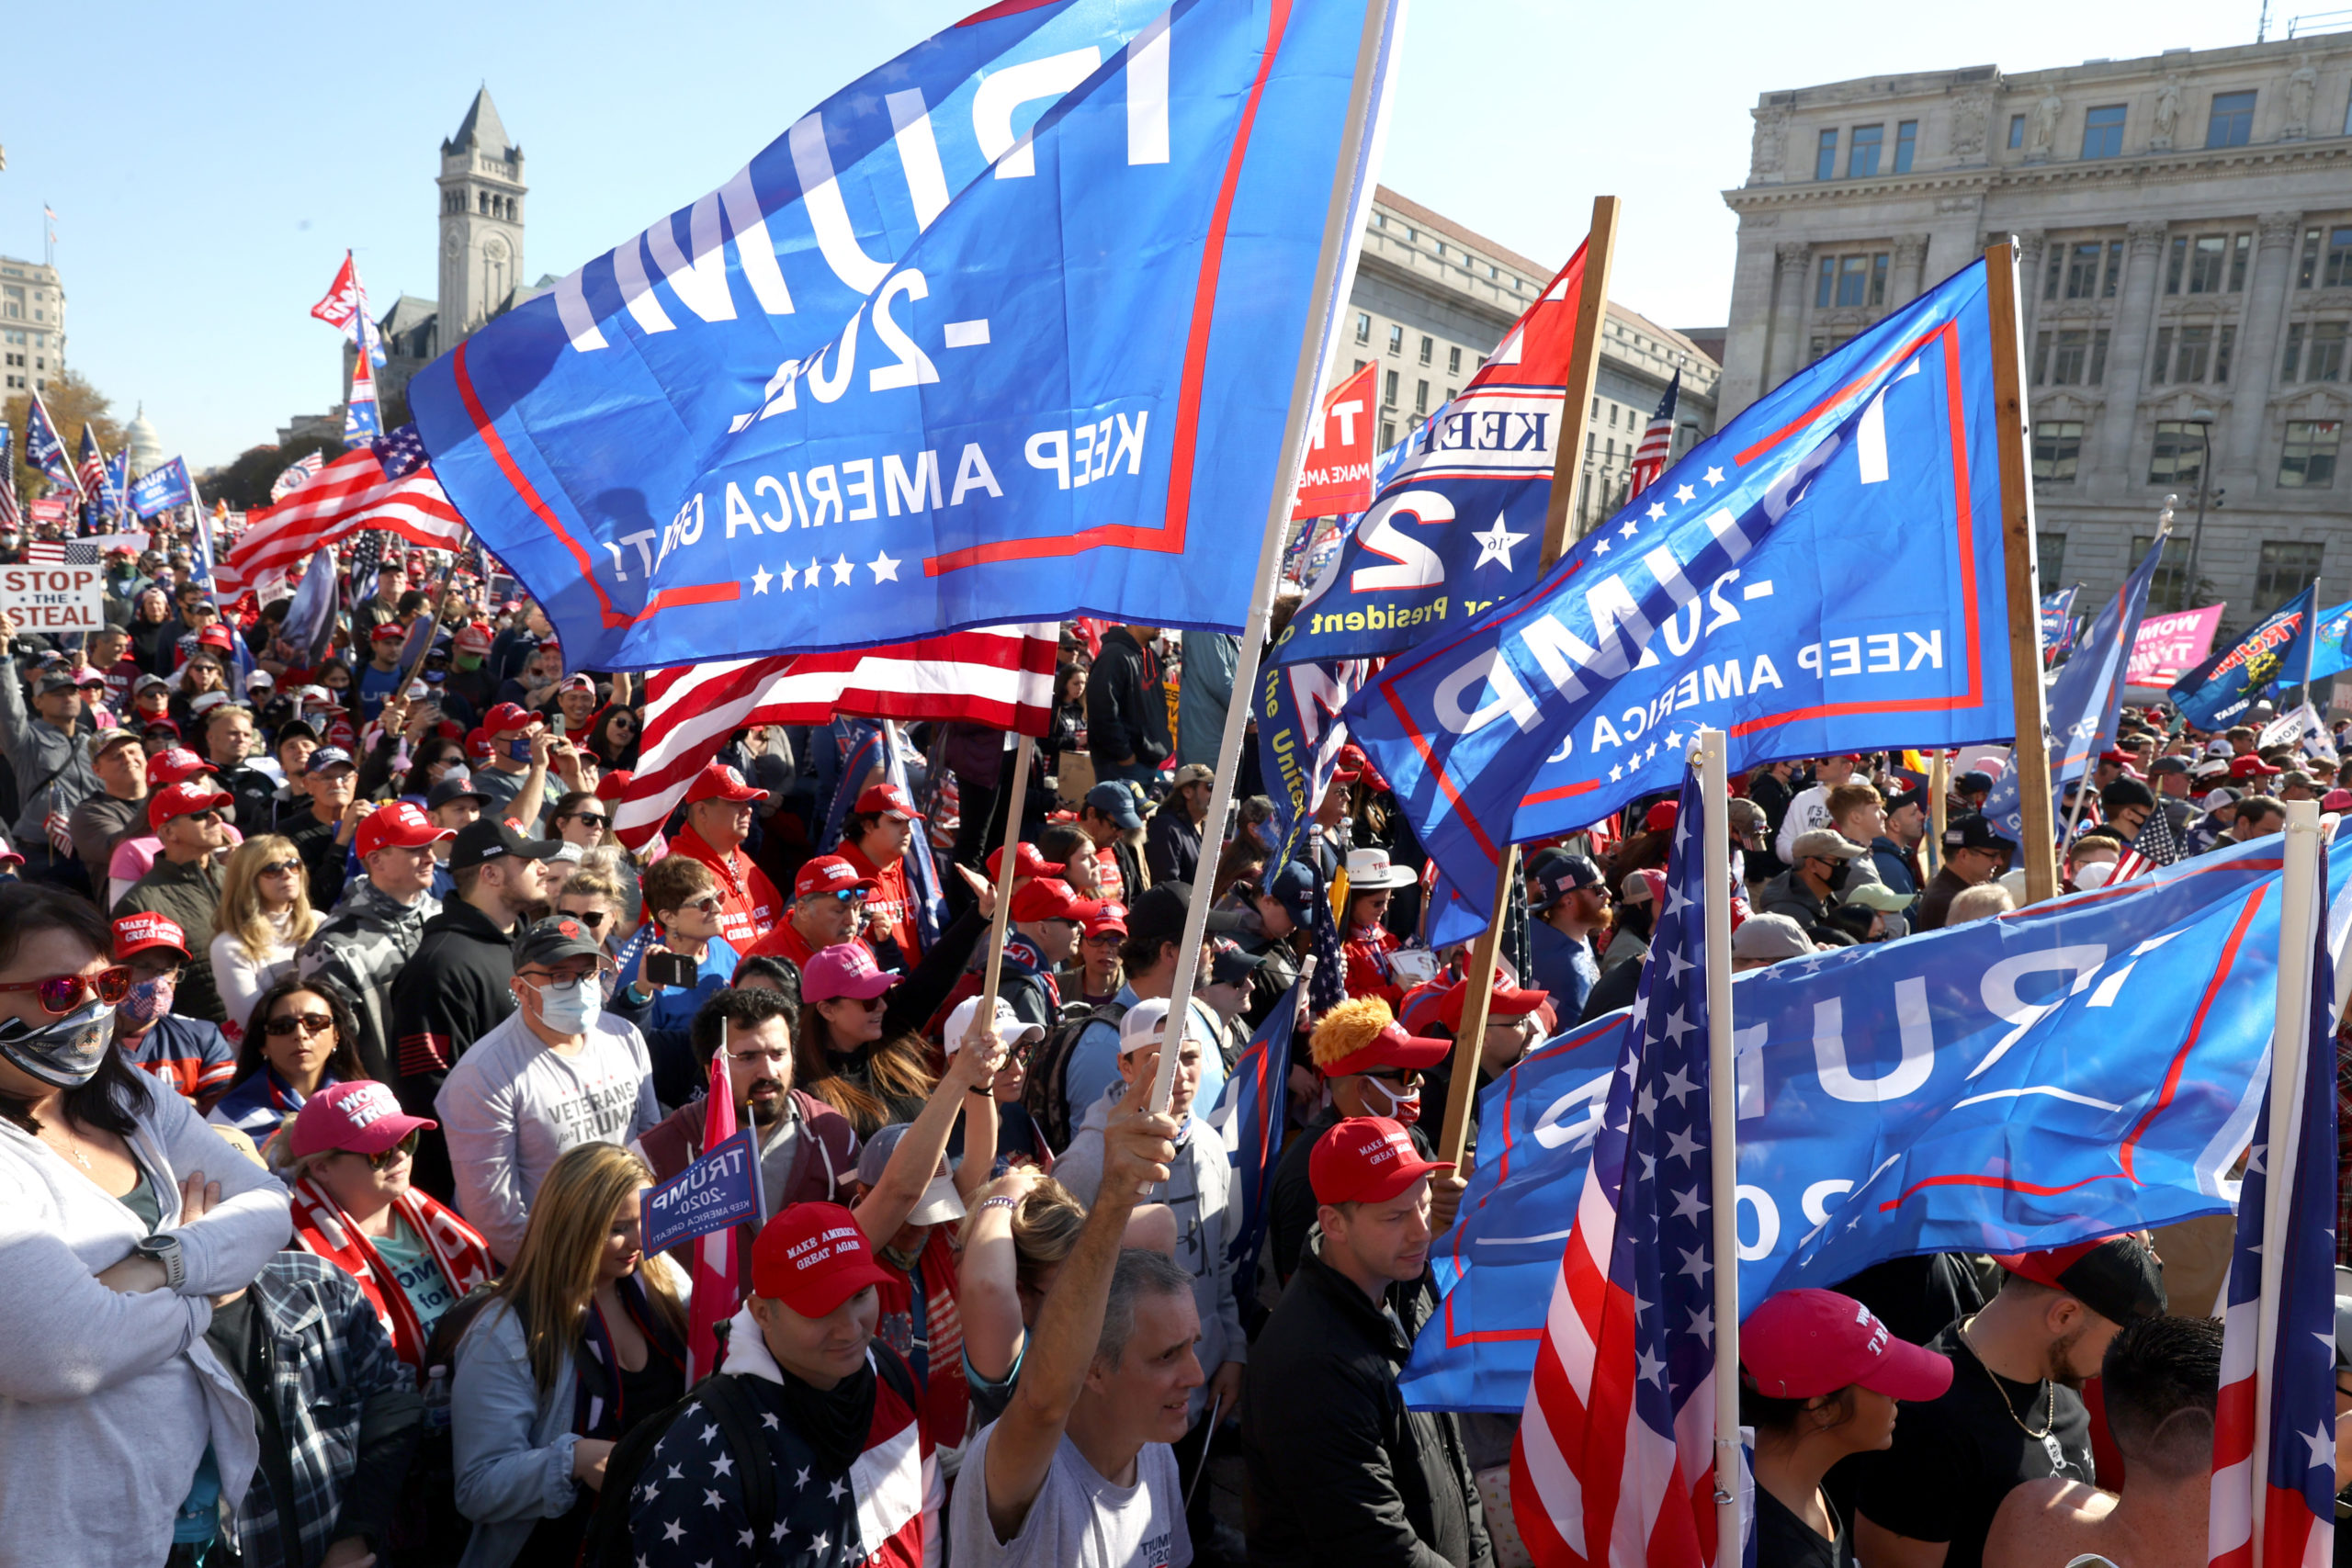 """WASHINGTON, DC - NOVEMBER 14: People participate in the """"Million MAGA March"""" from Freedom Plaza to the Supreme Court, on November 14, 2020 in Washington, DC. Supporters of U.S. President Donald Trump marching to protest the outcome of the 2020 presidential election. (Photo by Tasos Katopodis/Getty Images)"""